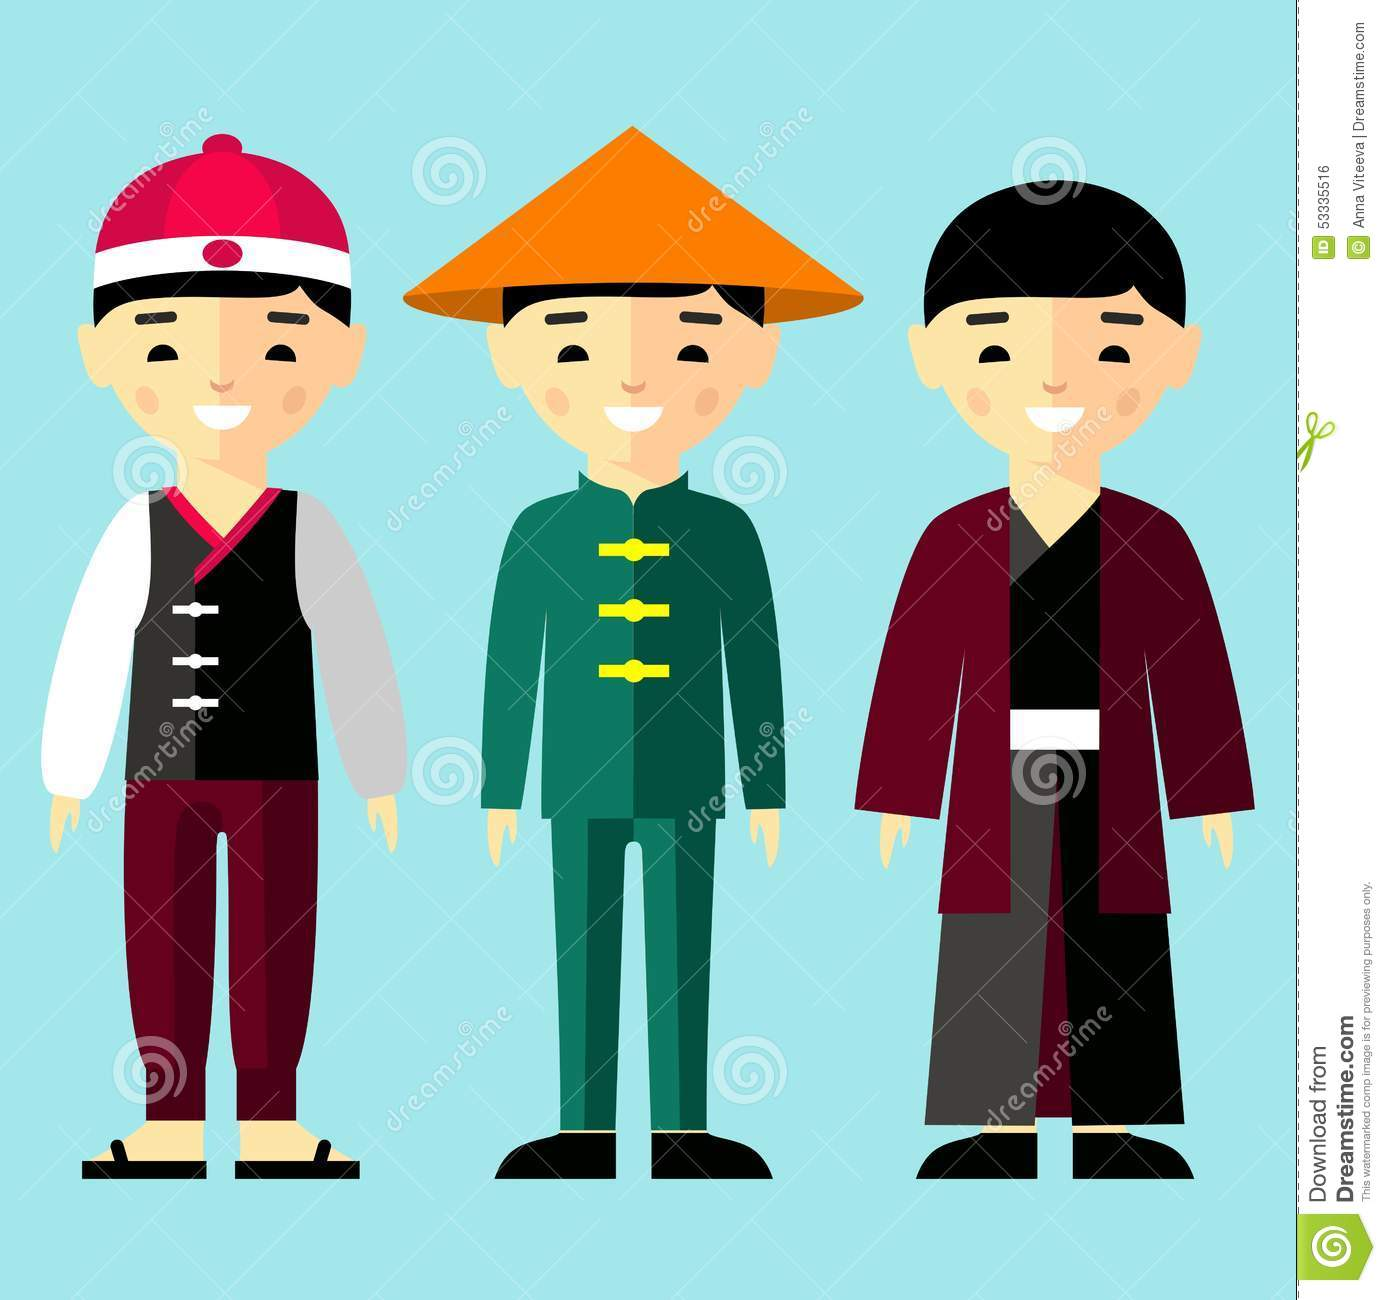 Reaper clipart traditional costume Japanese clipart Clothes drawings #10